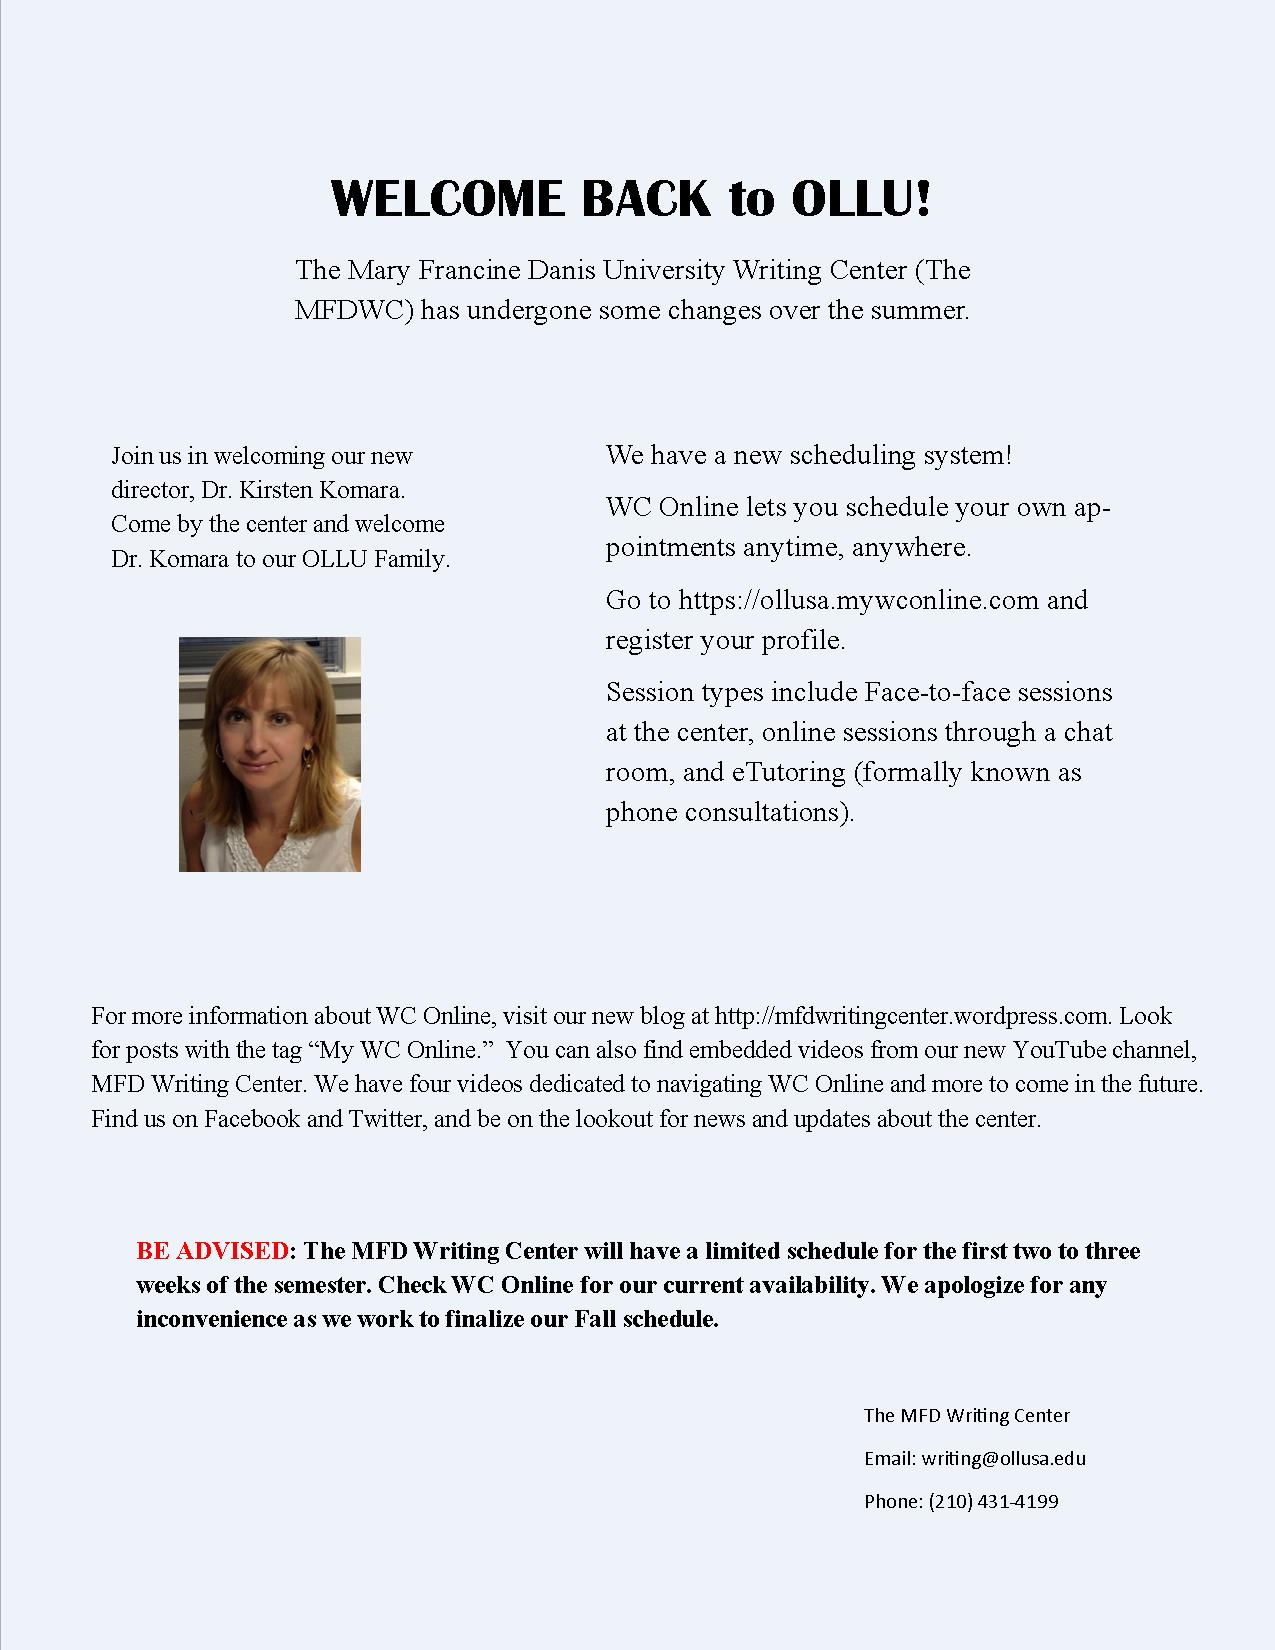 ollu engage Engage: Mary Francine Danis Writing Center News